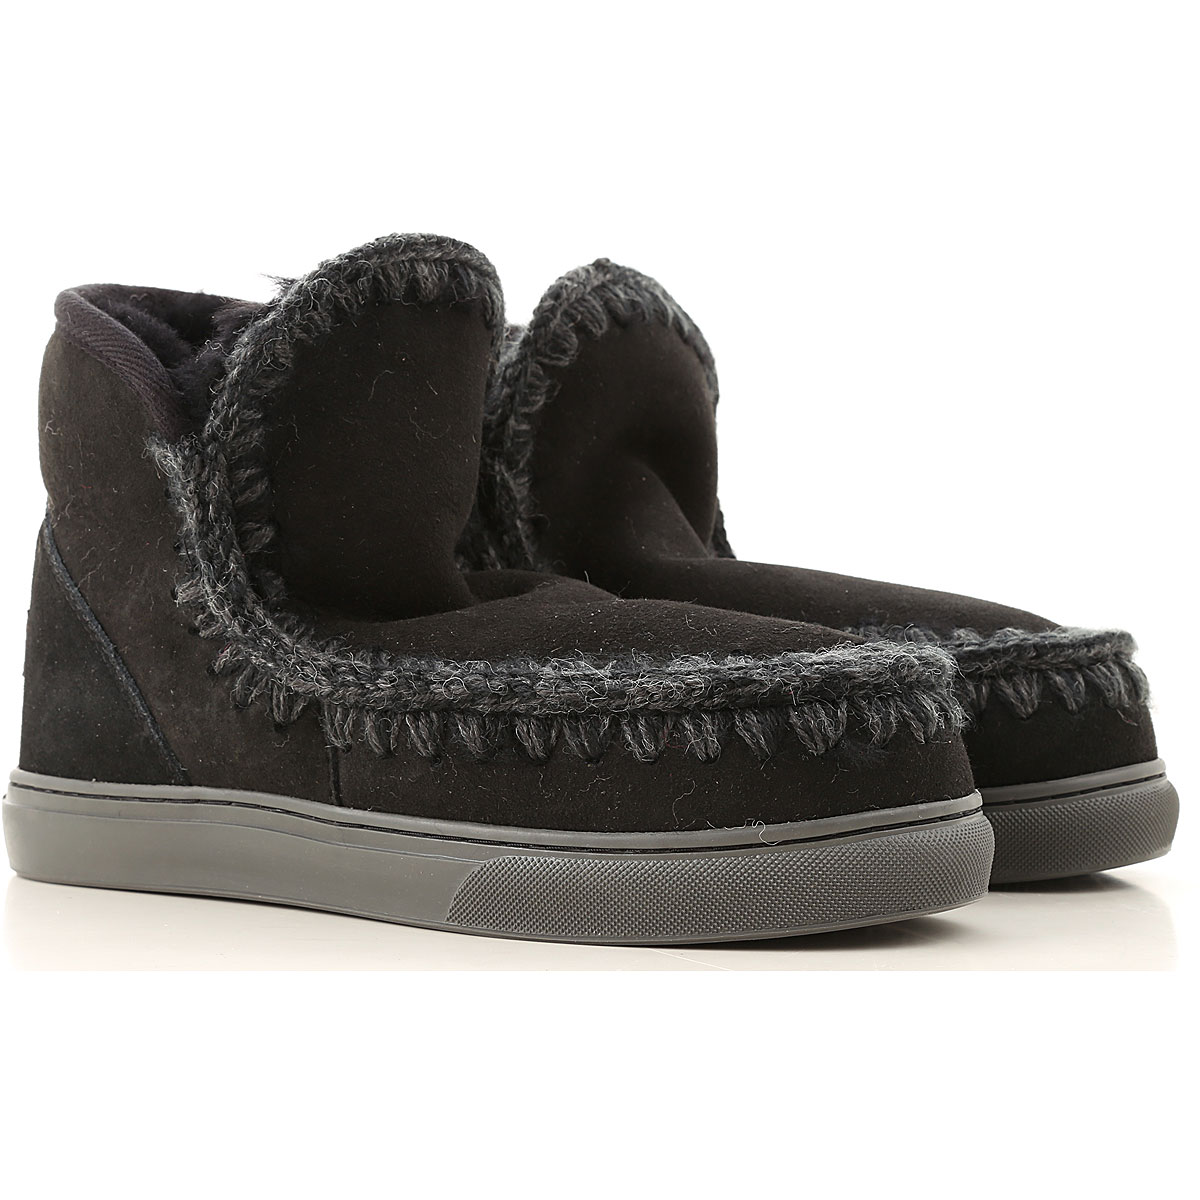 Mou Boots for Women, Booties On Sale in Outlet, Black, Suede leather, 2019, EUR 36 - UK 3 - USA 5.5 EUR 37 - UK 4 - USA 6.5 EUR 38 - UK 5 - USA 7.5